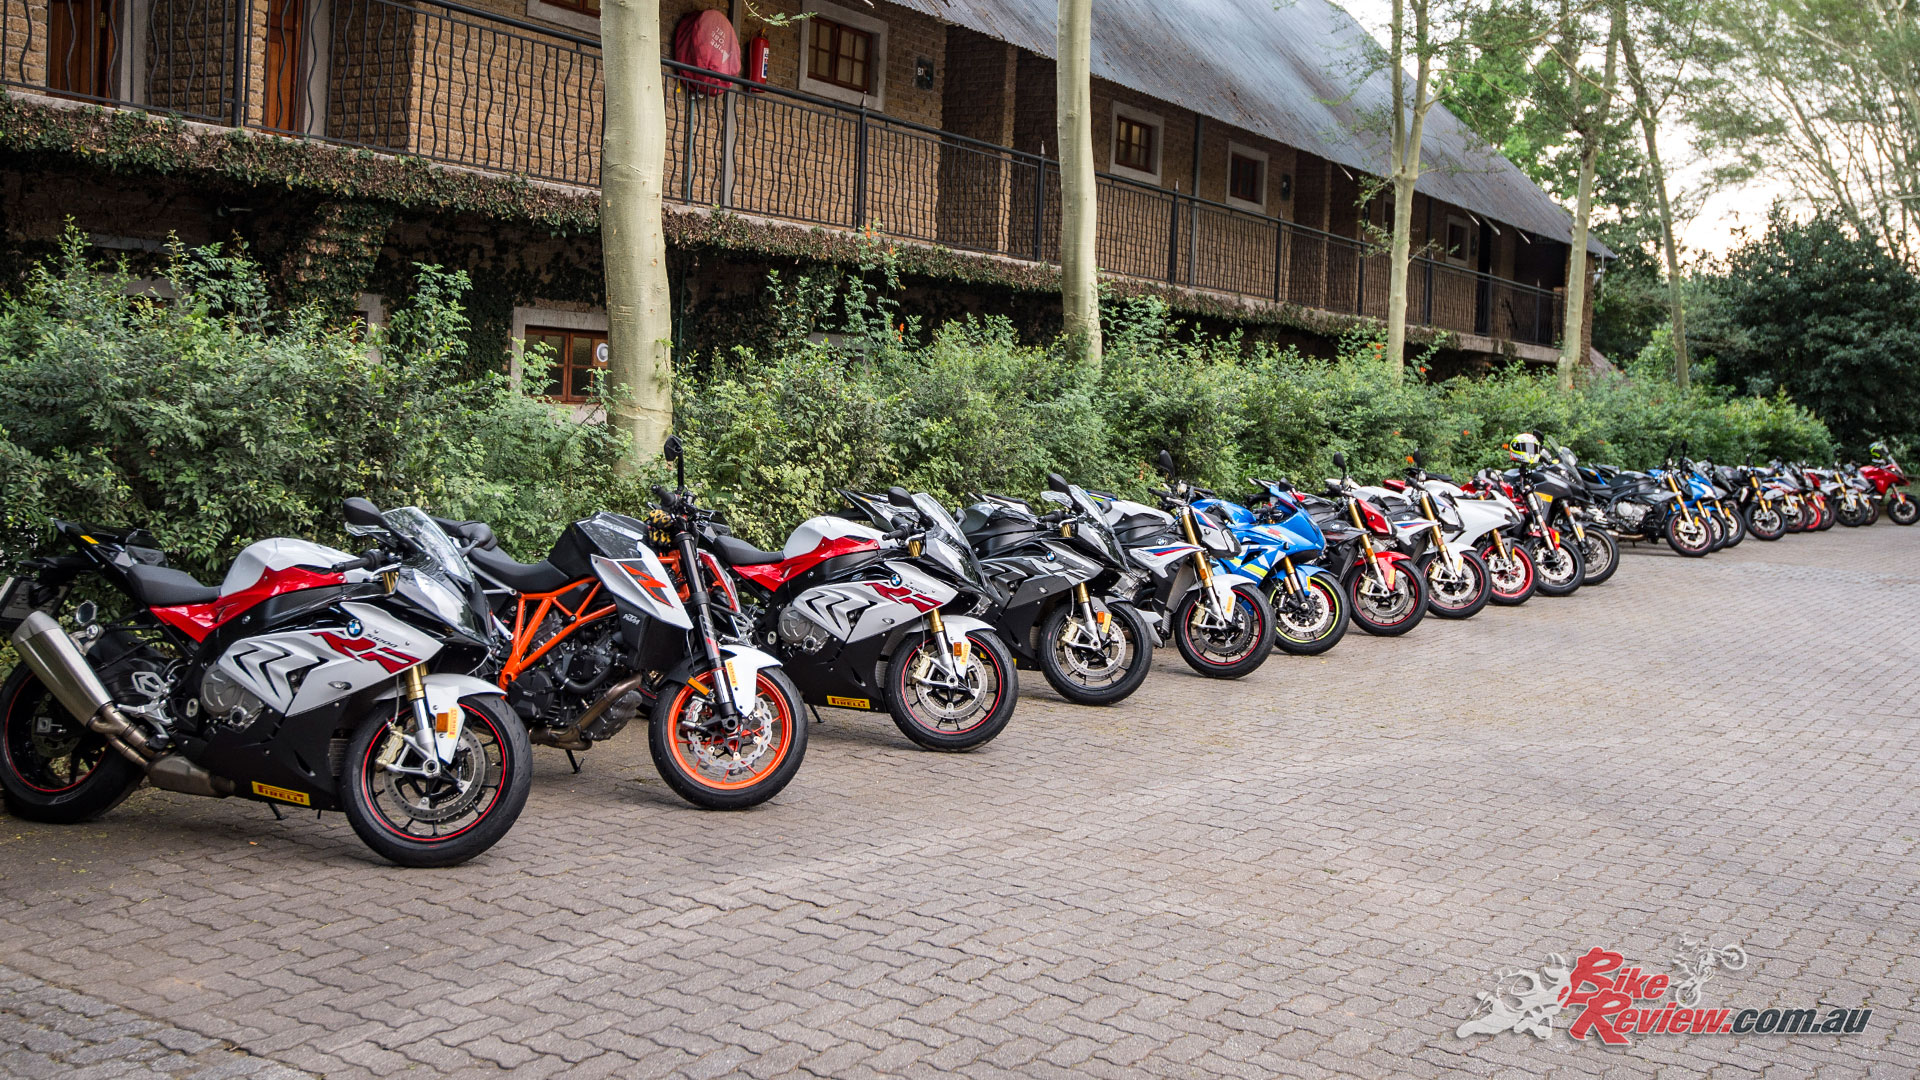 There was a wide variety of test bikes available for the road testing section